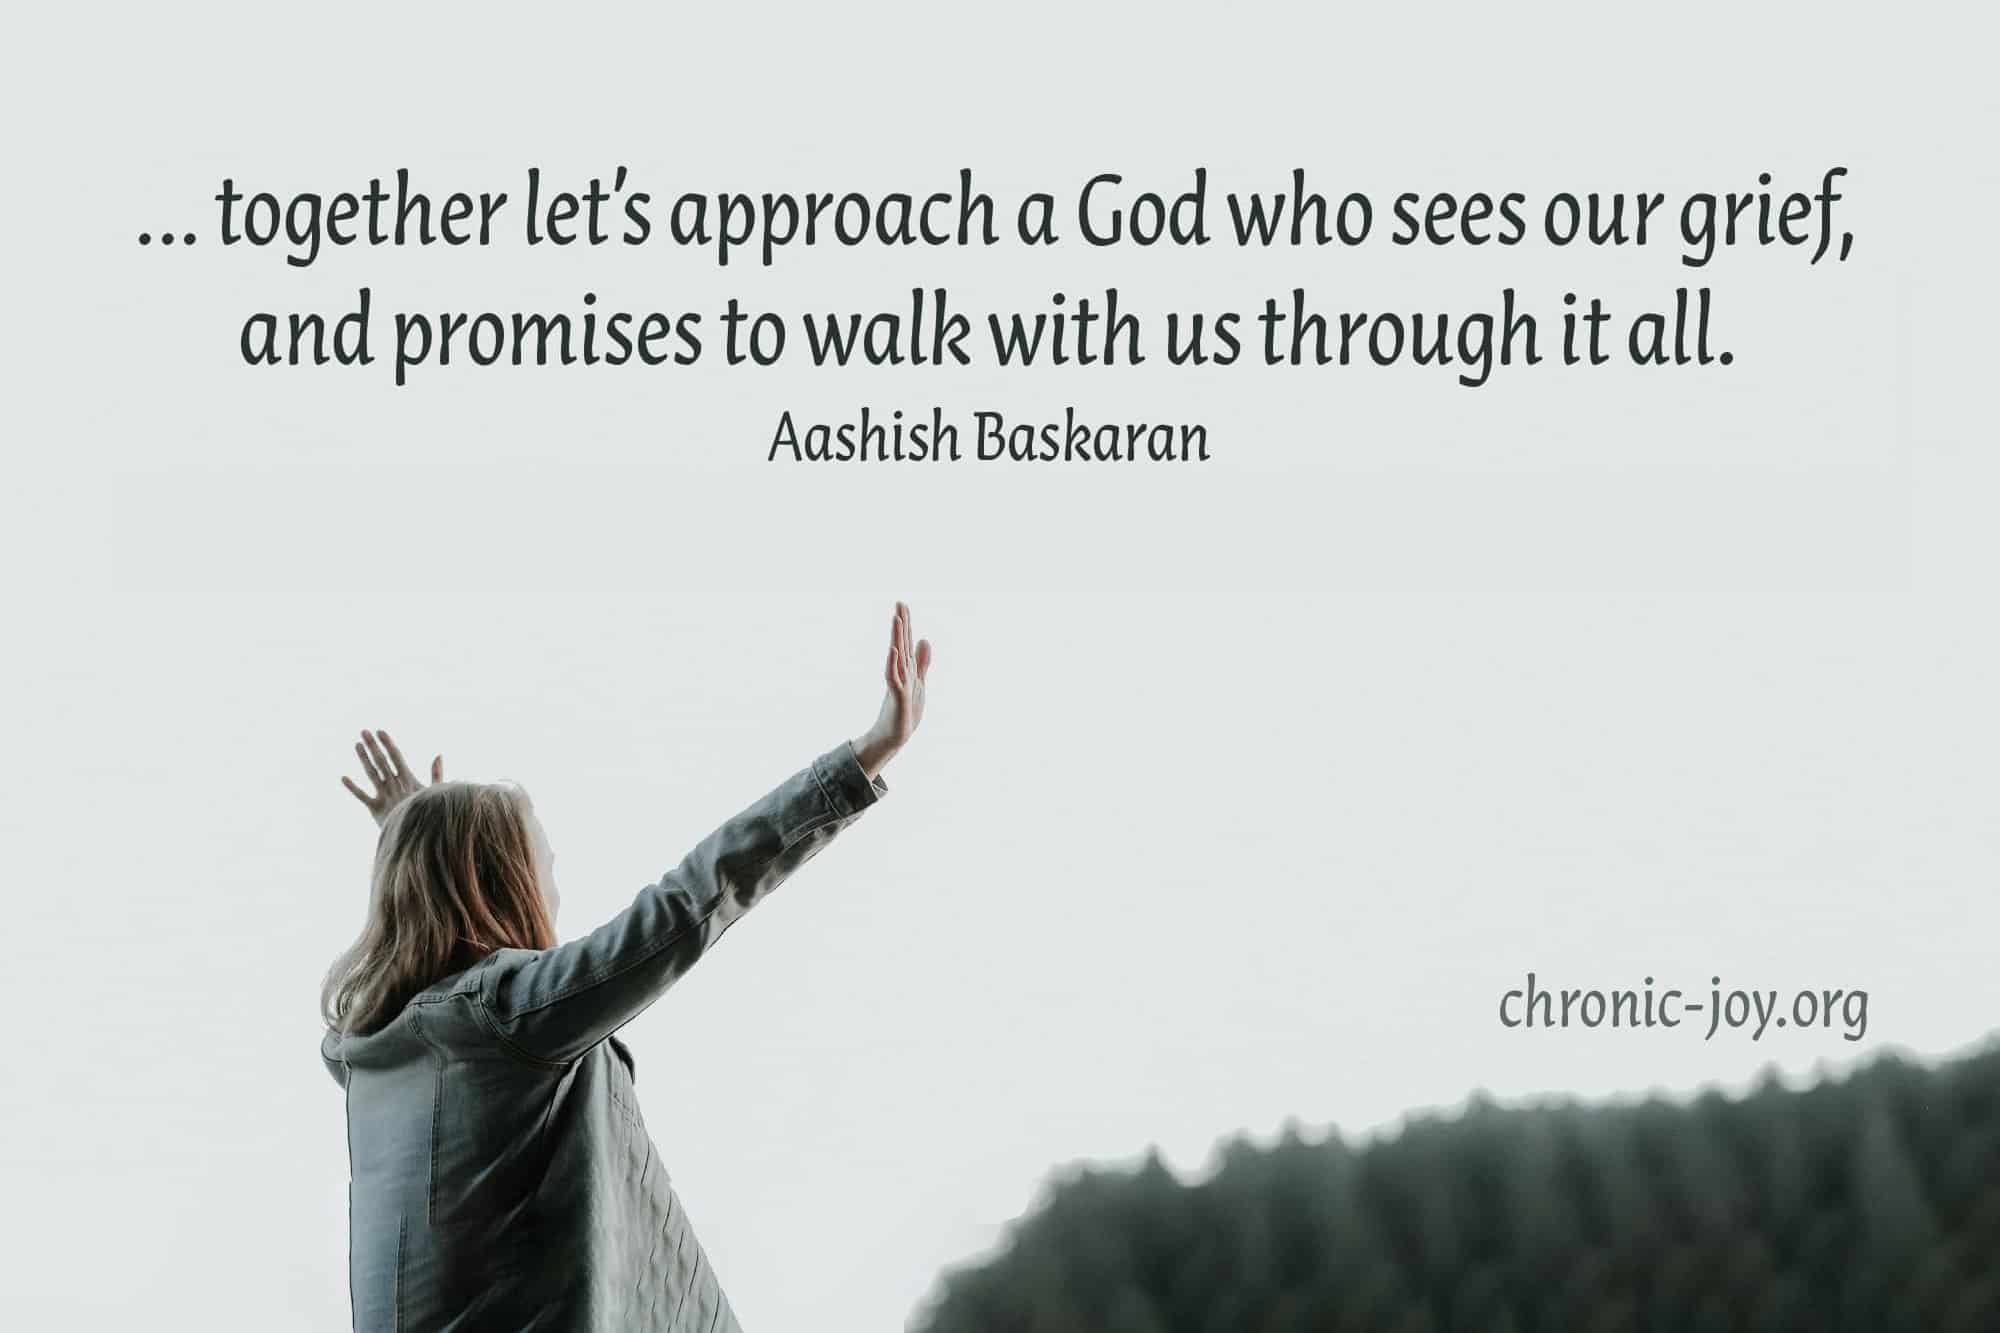 """...together let's approach a God who sees our grief, and promises to walk with us through it all."" Aashish Baskaran"